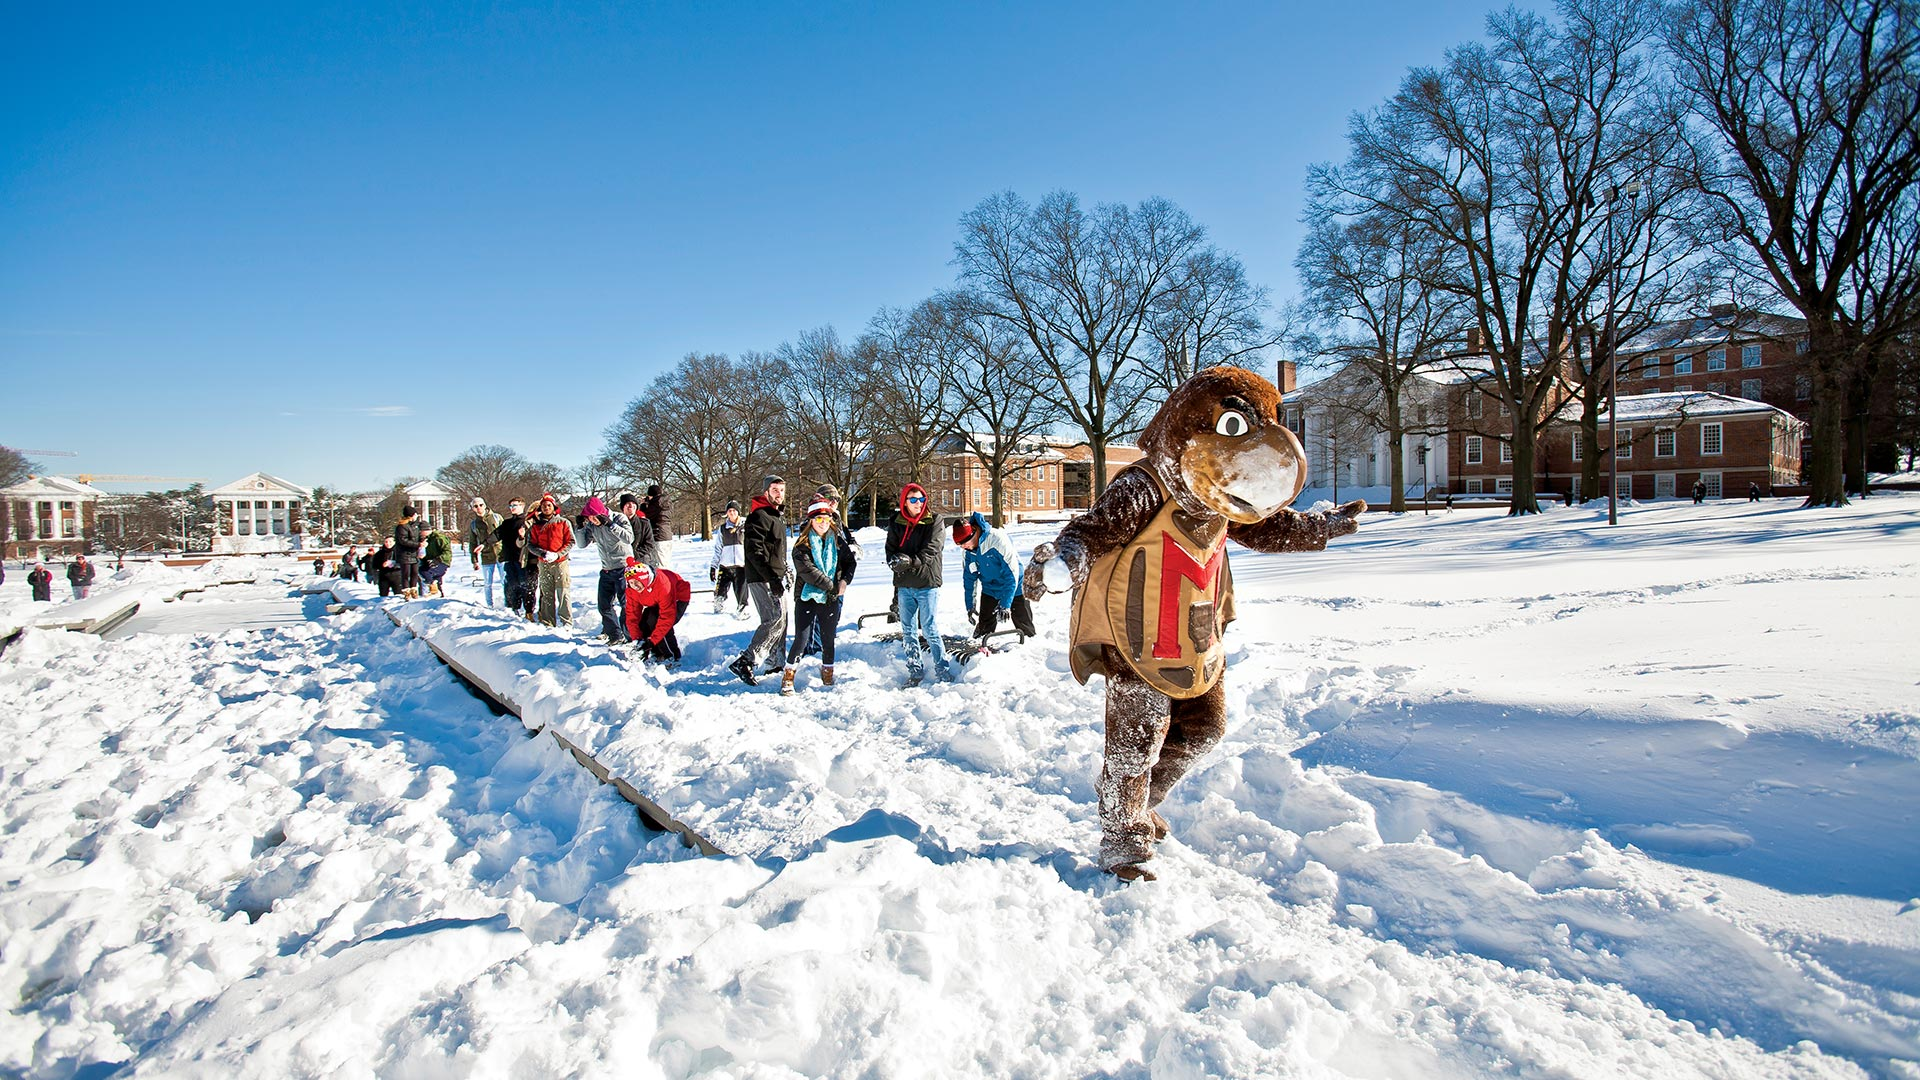 Testudo playing in the snow with students